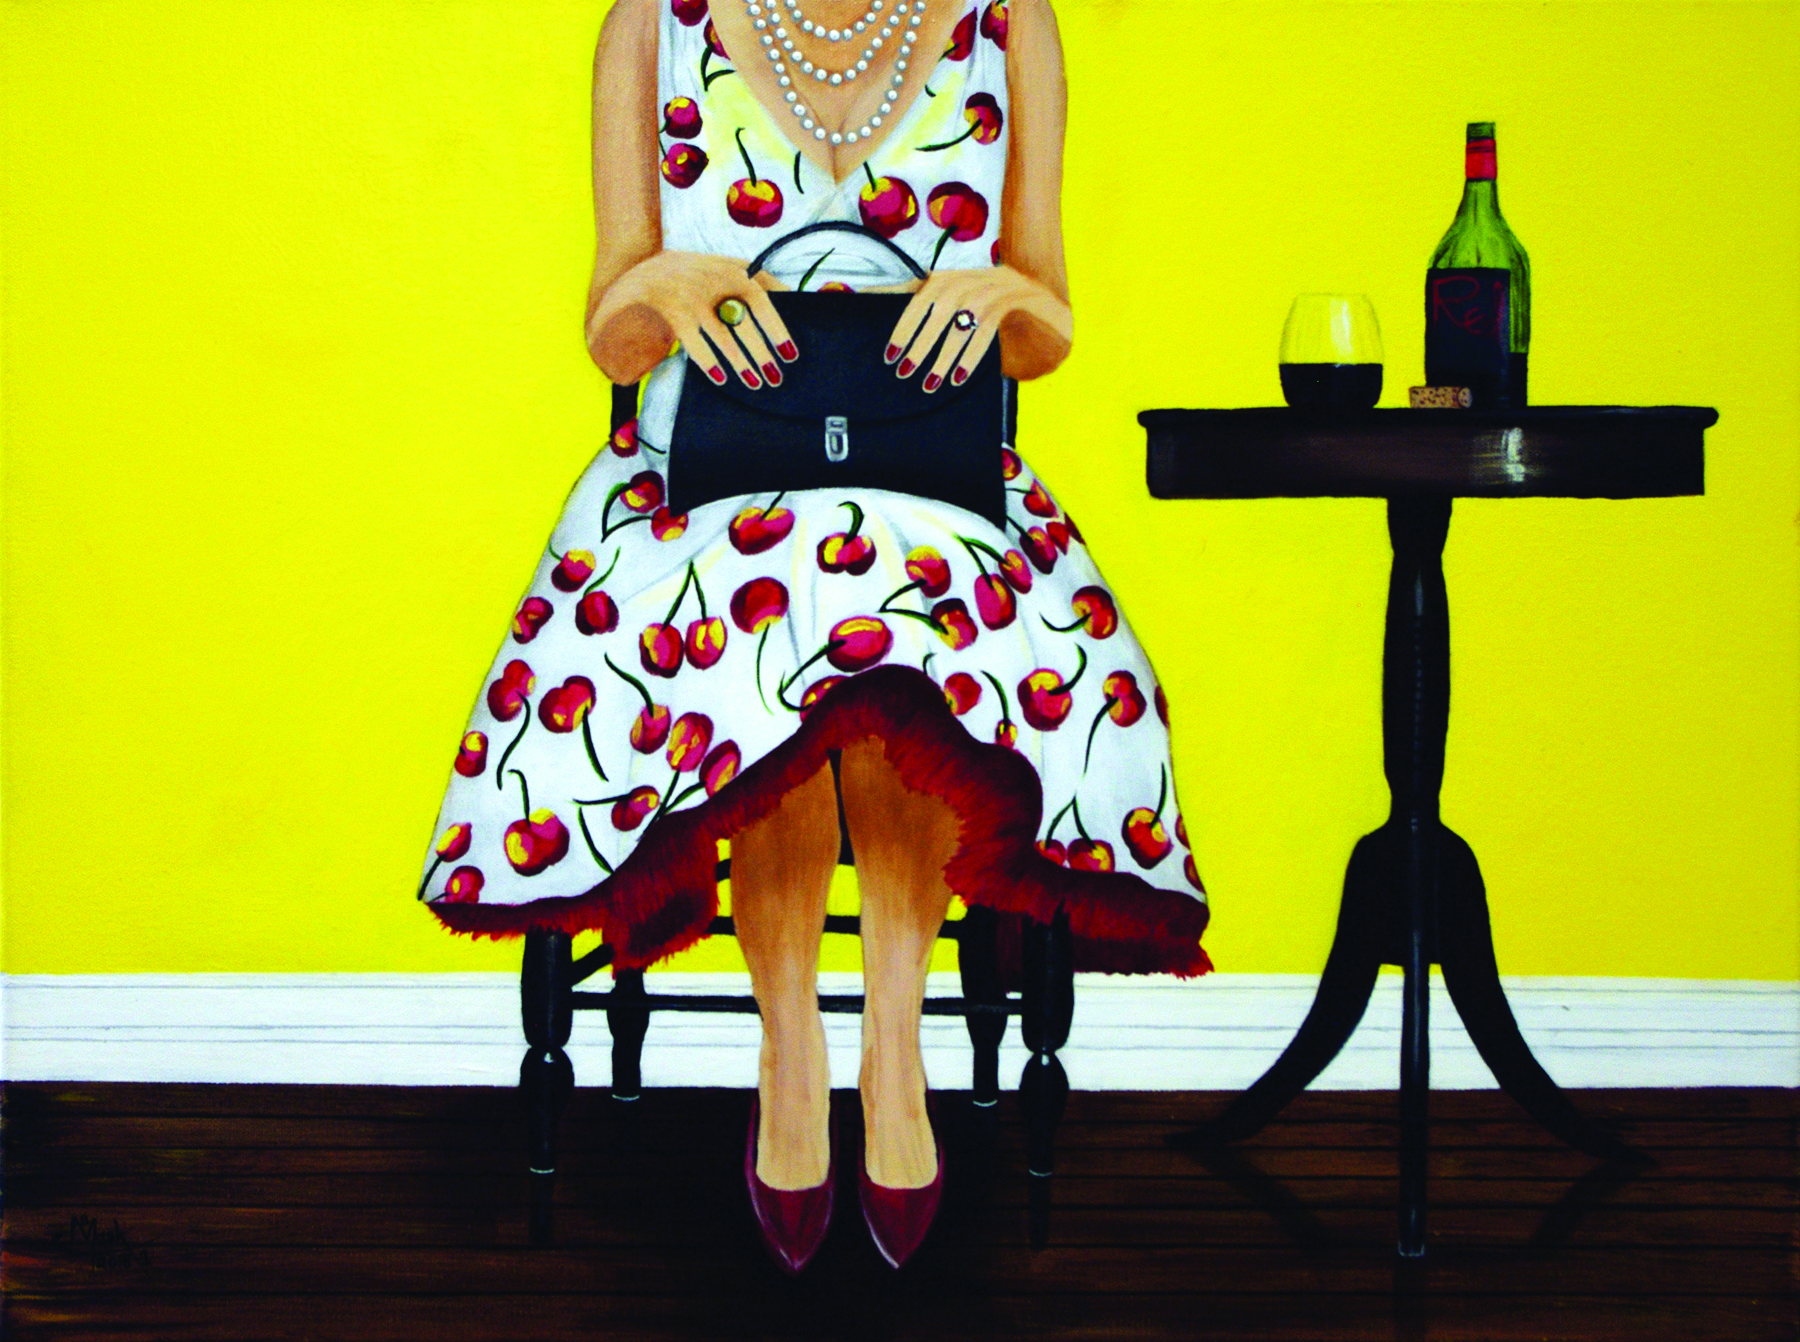 """I Drink Alone"" is part of the exhibit at the Gallery @ Barr Photographics."